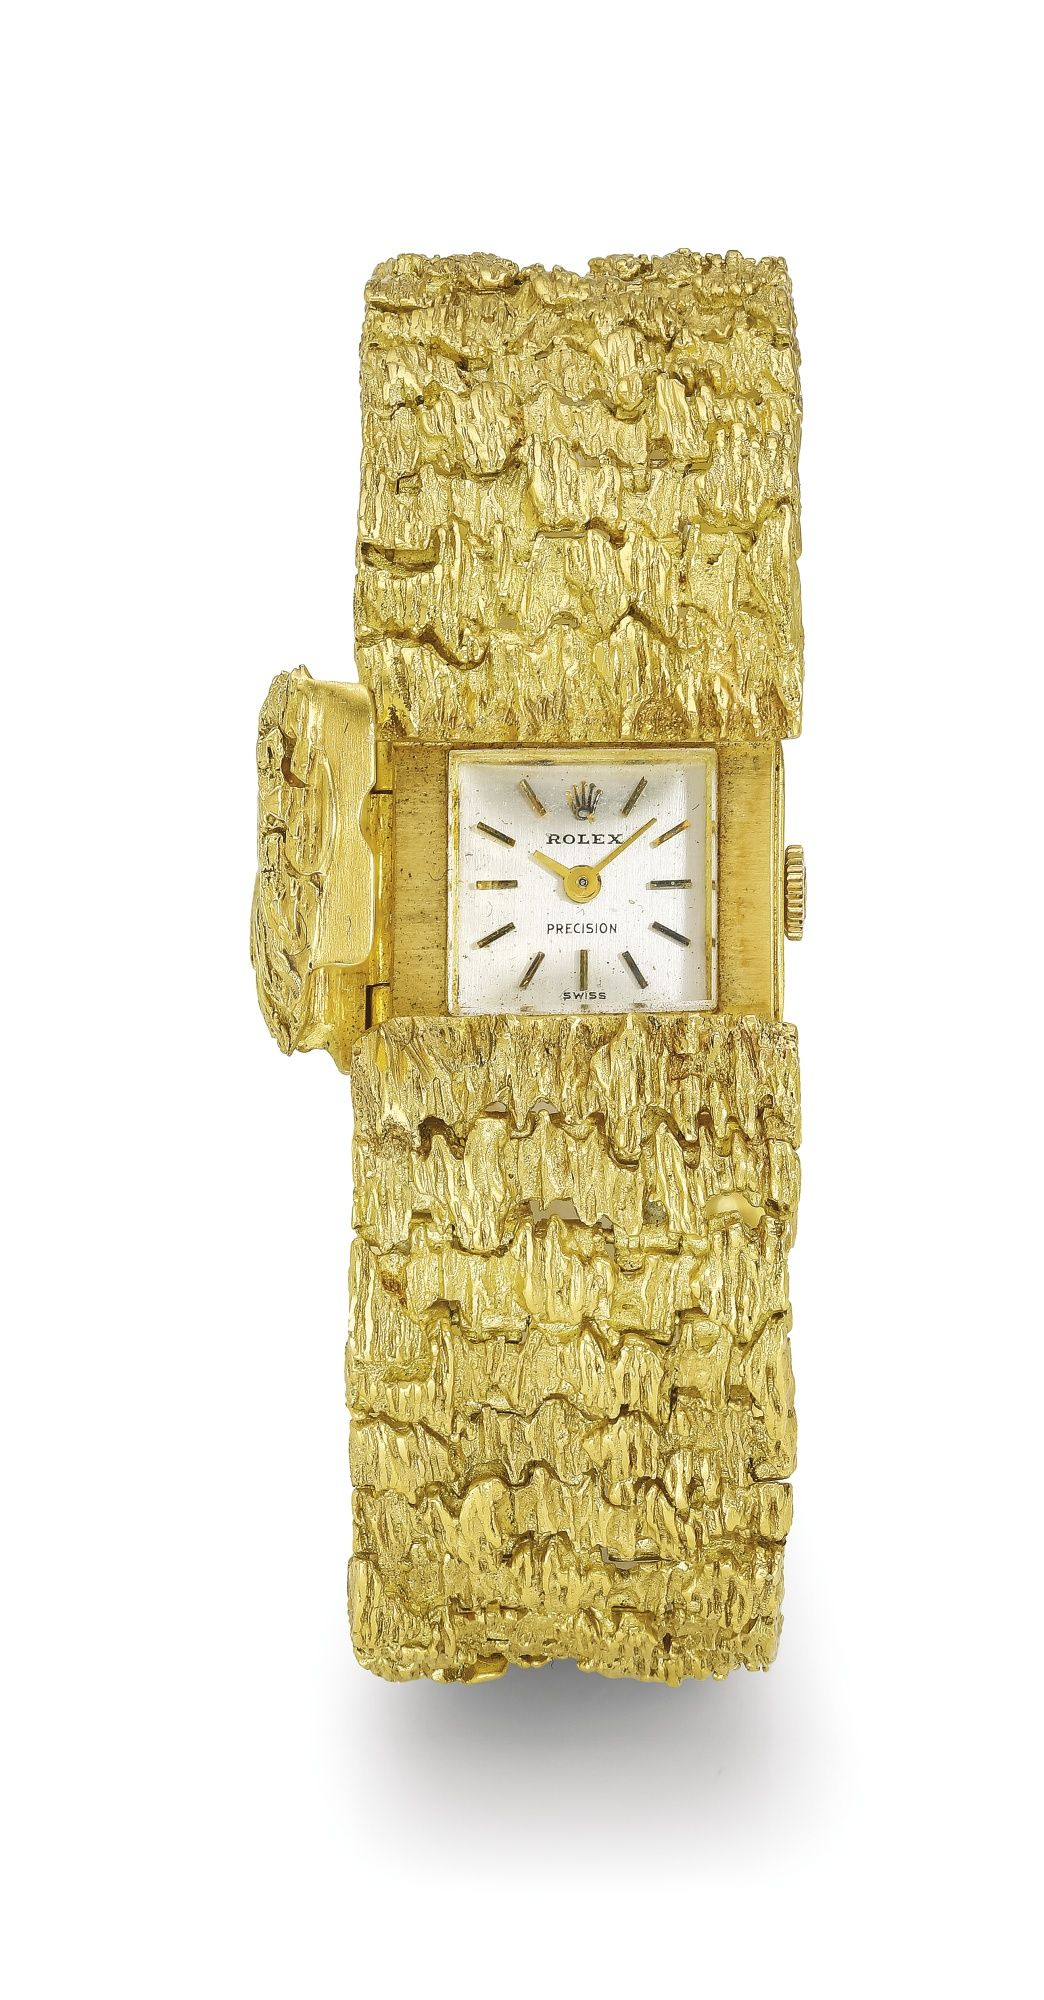 Rolex a ladyus yellow gold concealed dial bracelet watch ref